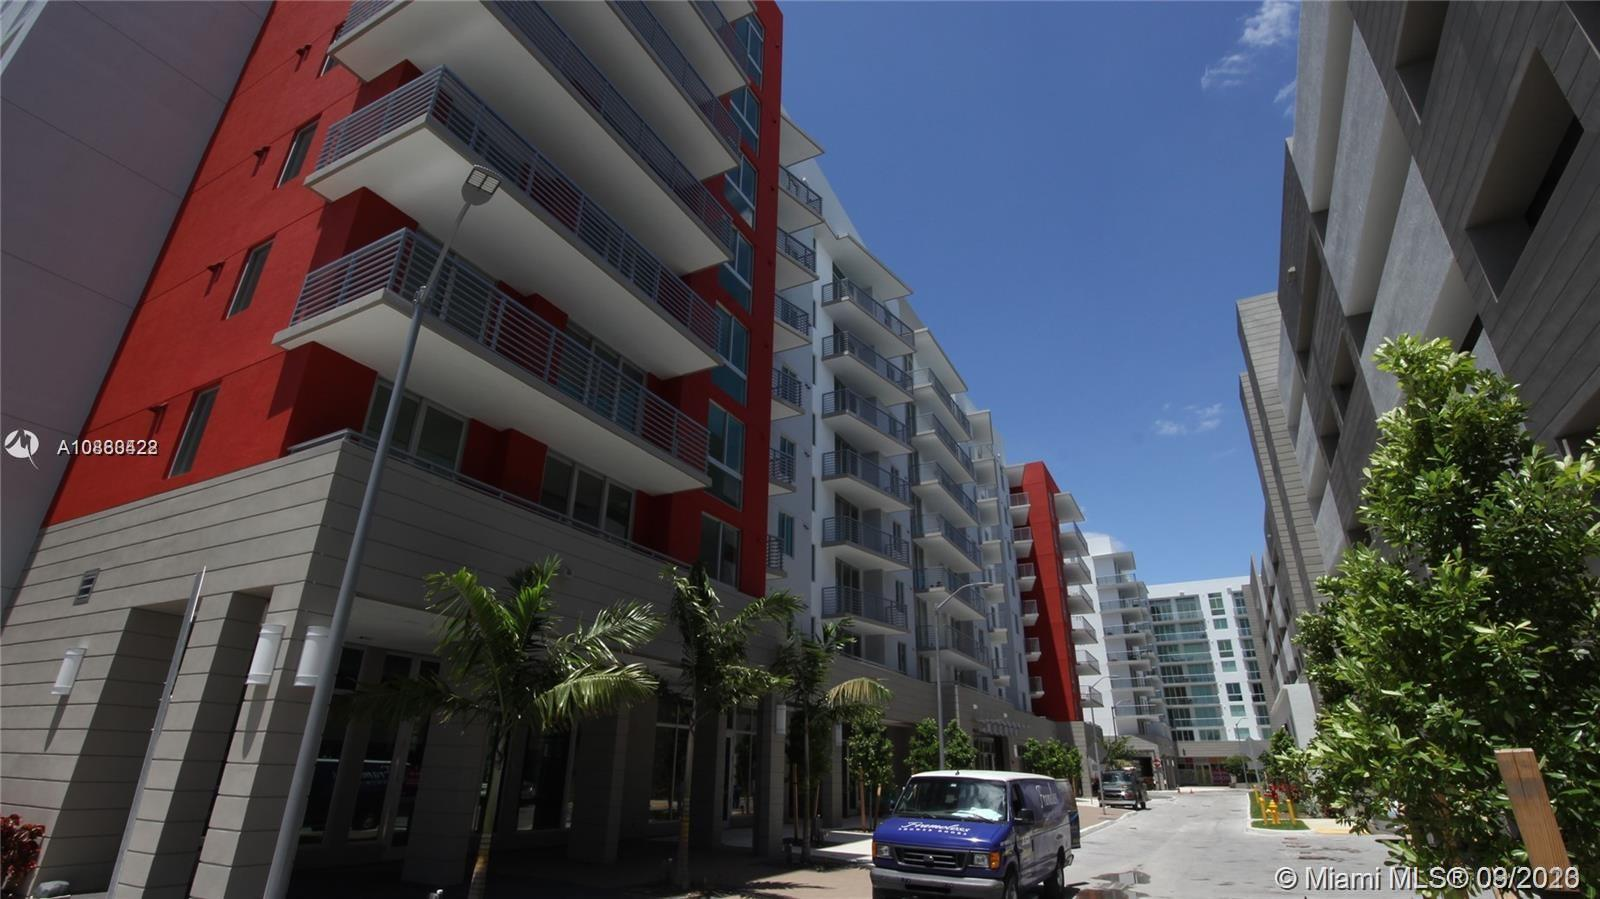 Midtown Doral - Building 1 #809 - 7661 NW 107th Ave #809, Doral, FL 33178